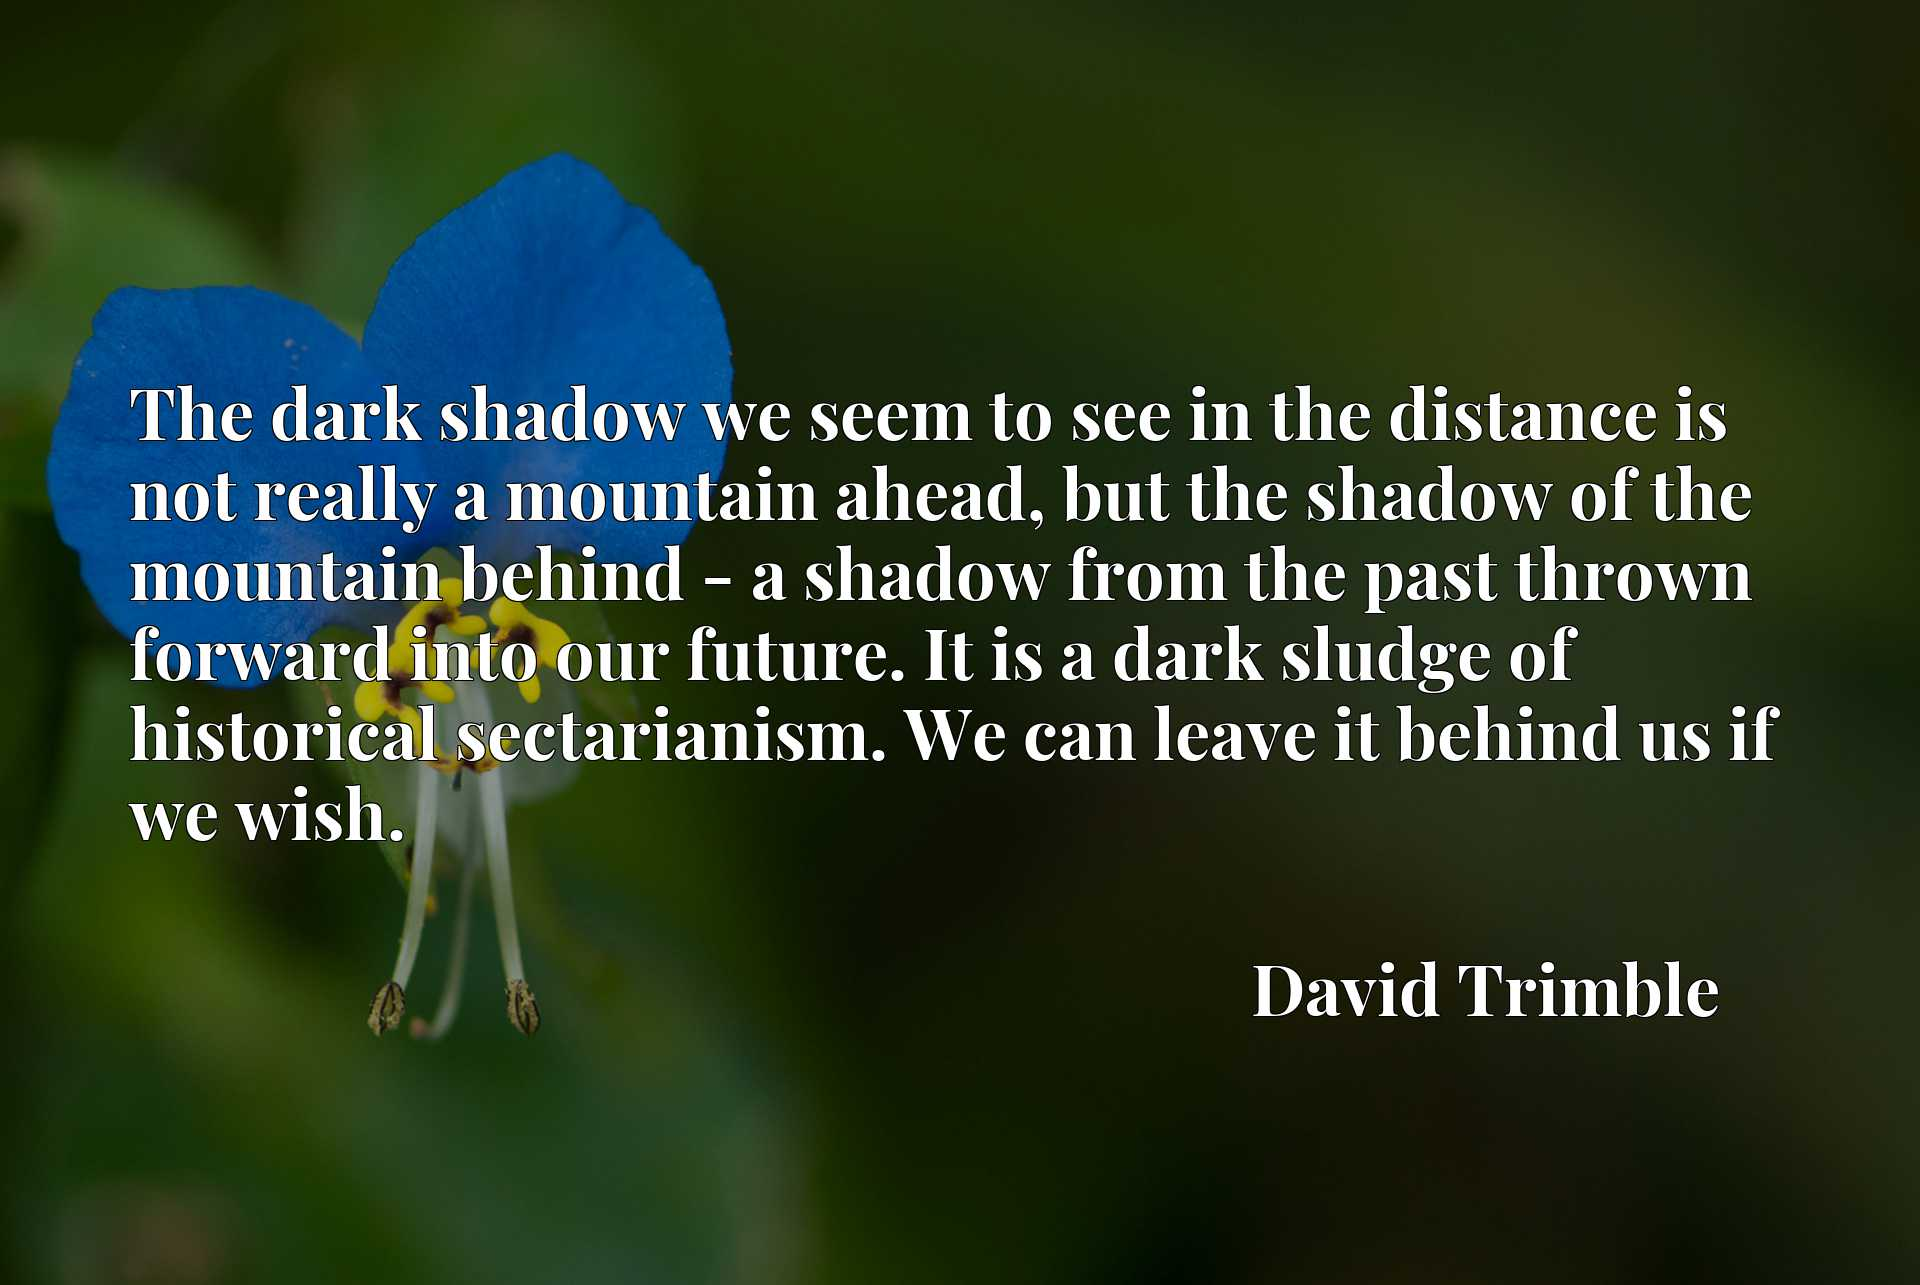 The dark shadow we seem to see in the distance is not really a mountain ahead, but the shadow of the mountain behind - a shadow from the past thrown forward into our future. It is a dark sludge of historical sectarianism. We can leave it behind us if we wish.